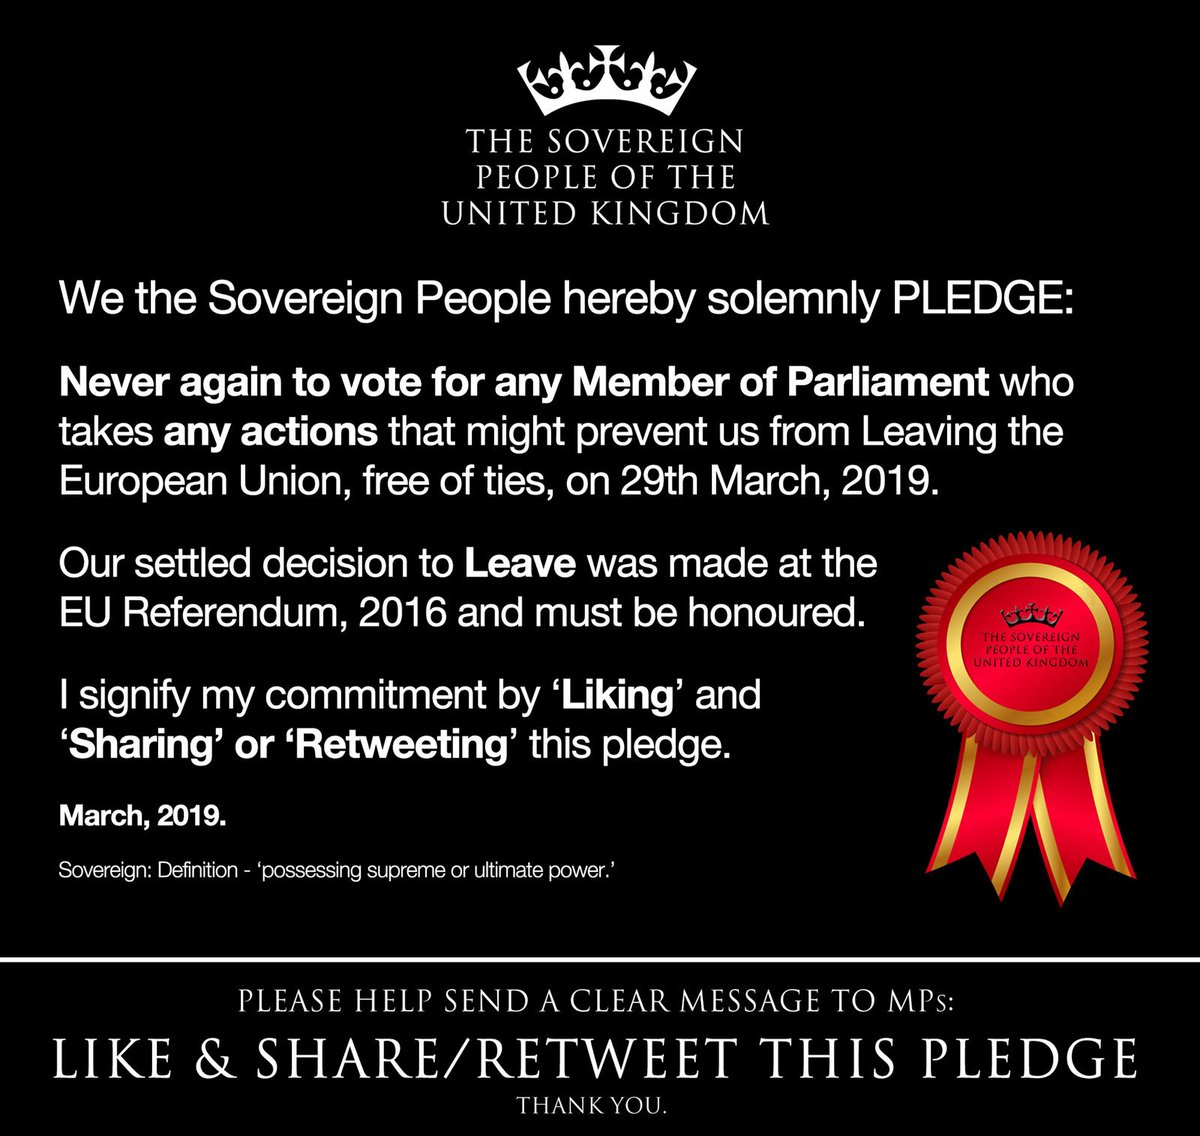 Please help send this clear message to Members of Parliament! - Like and Retweet! Thank you! #SovereignPeopleUK<br>http://pic.twitter.com/v38RCQKcVZ